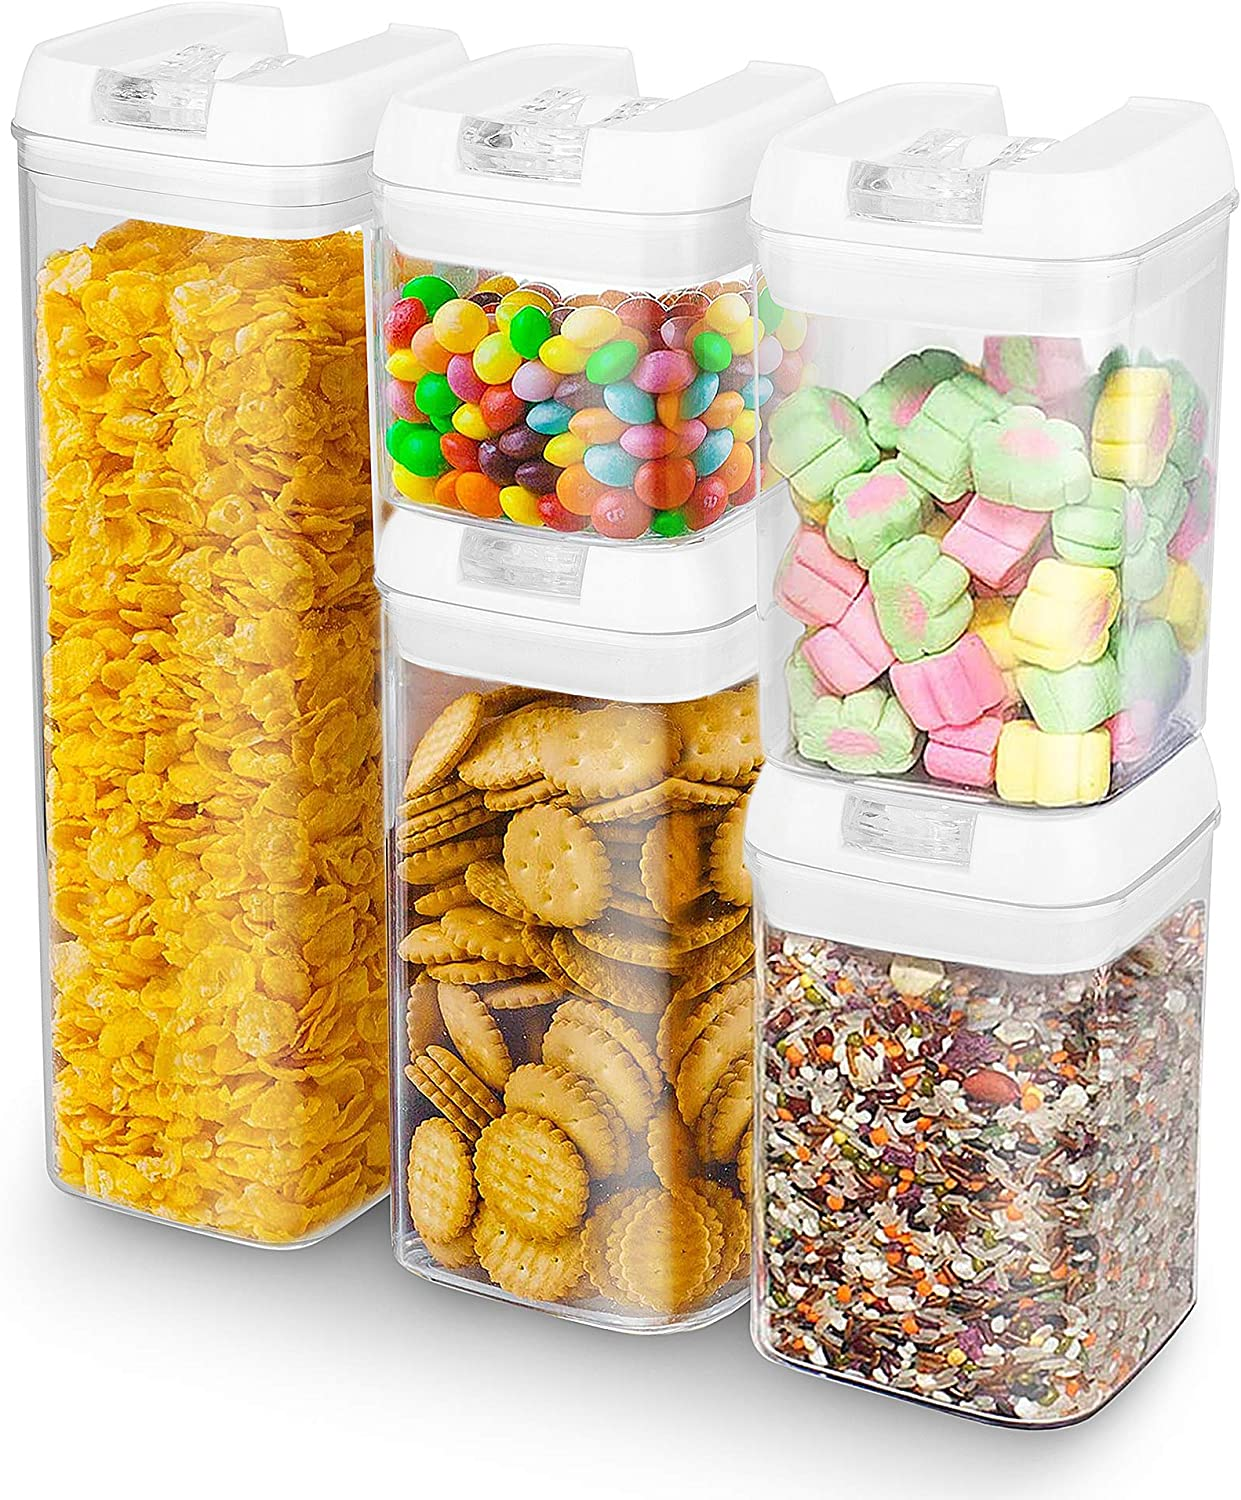 5-Piece Airtight Food Storage Containers, ENLOY Plastic BPA-Free Kitchen & Pantry Organization Containers with Lids for Cereal, Spaghetti, Noodles, Pasta - 16oz, 25oz, 38oz, 60oz